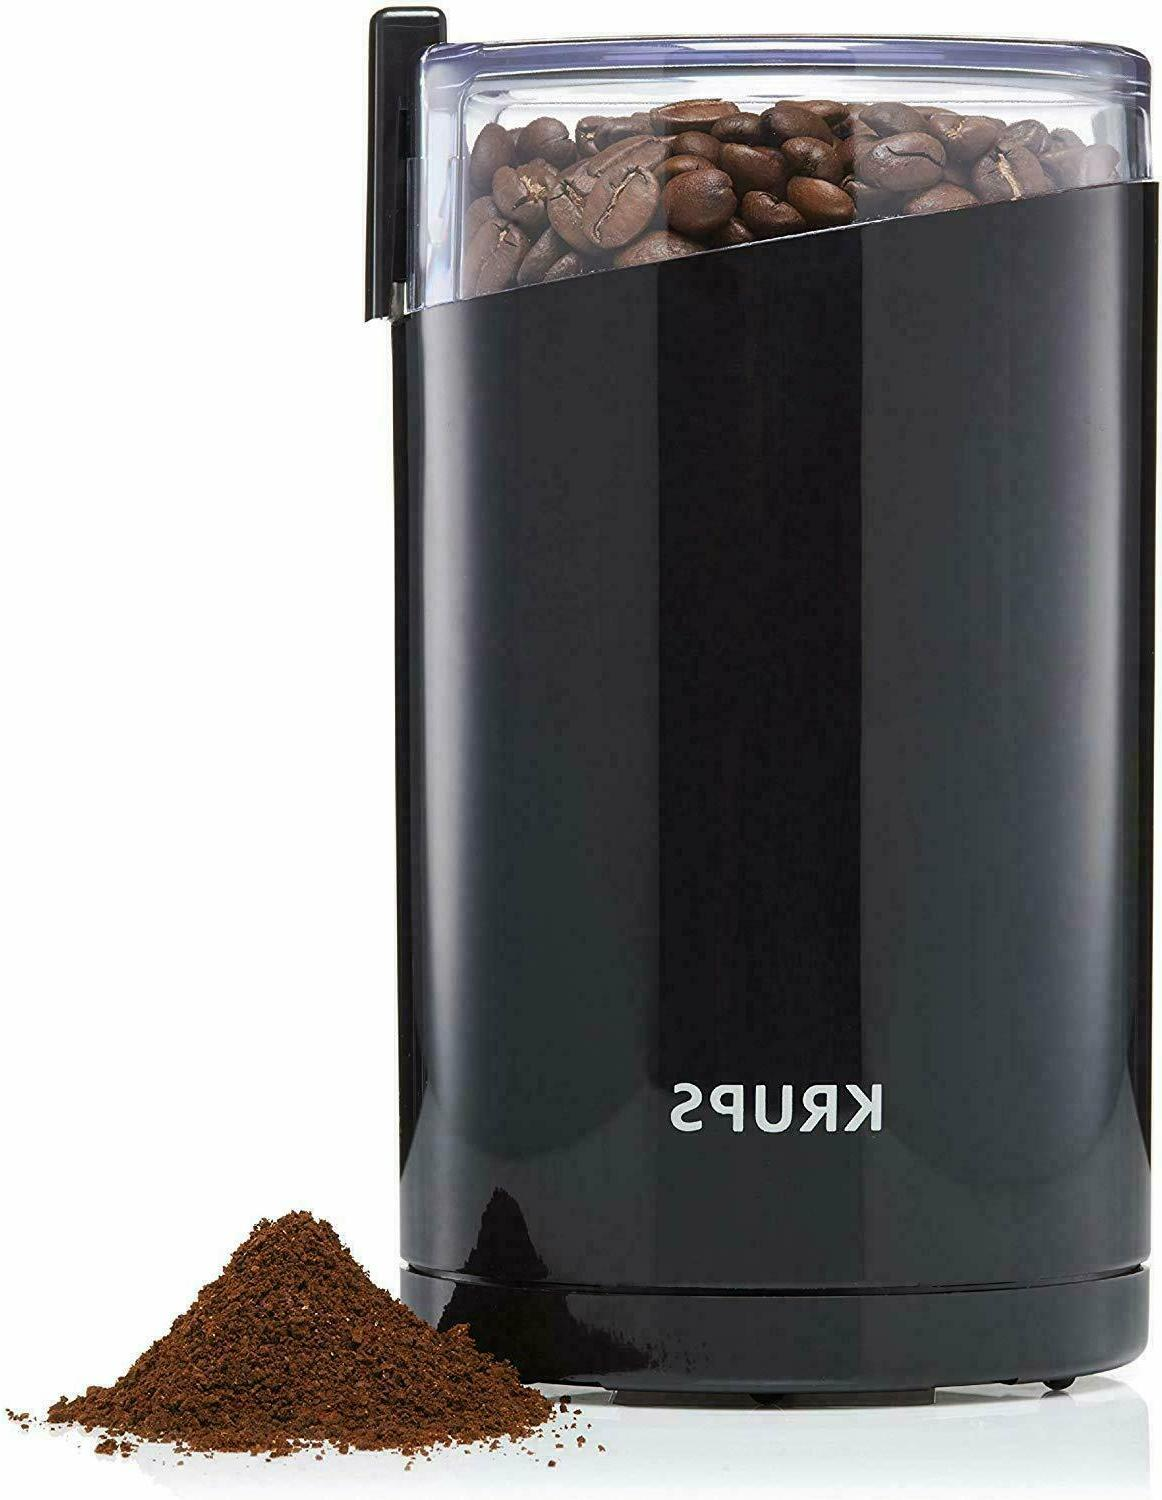 KRUPS F203 Electric Spice and Coffee Grinder with Stainless